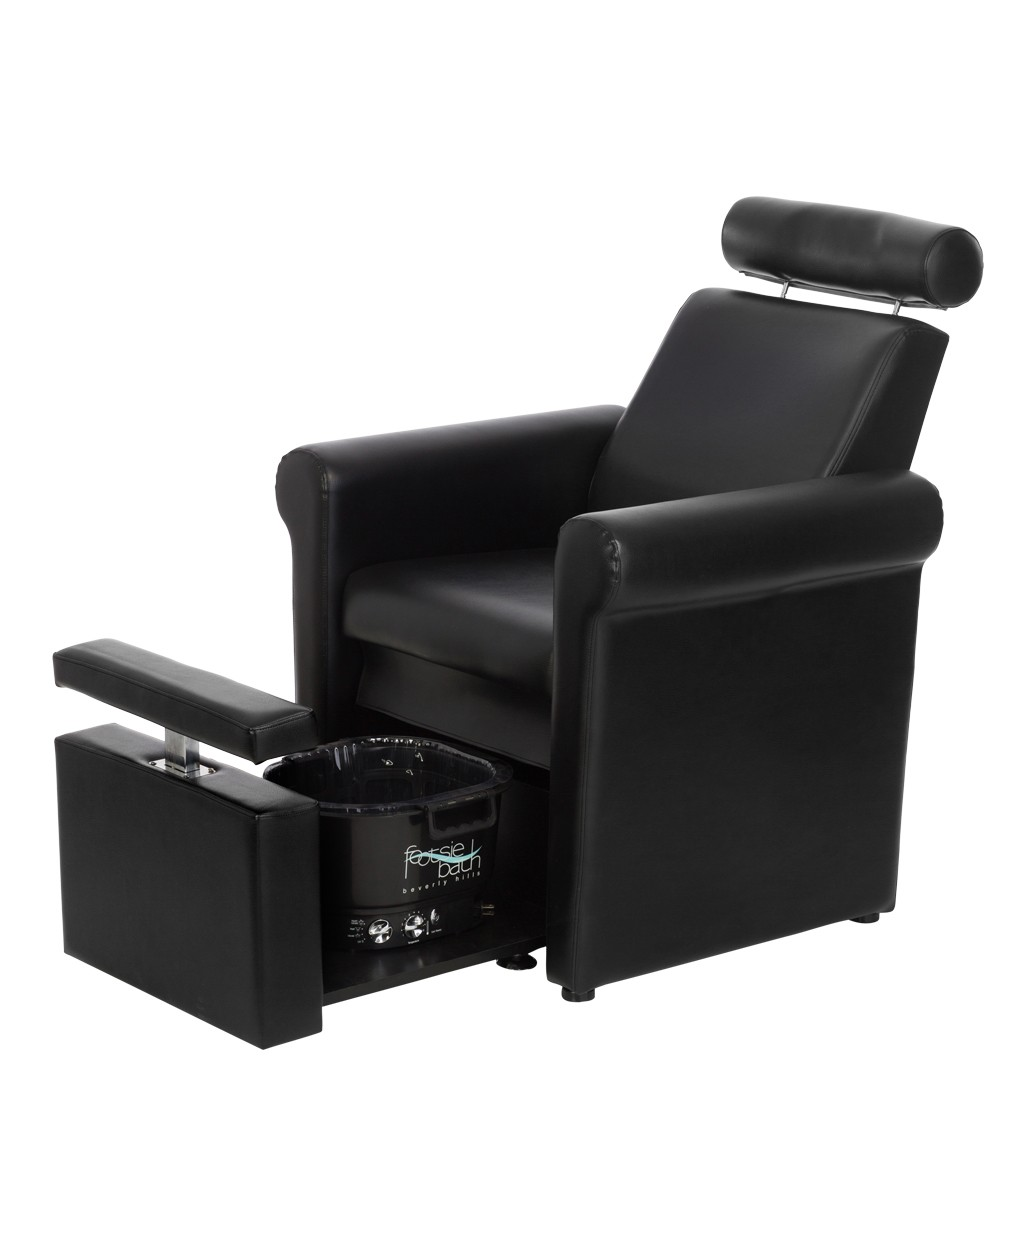 pedicure chairs parts jazzy power chair battery life stool with footrest mona lisa